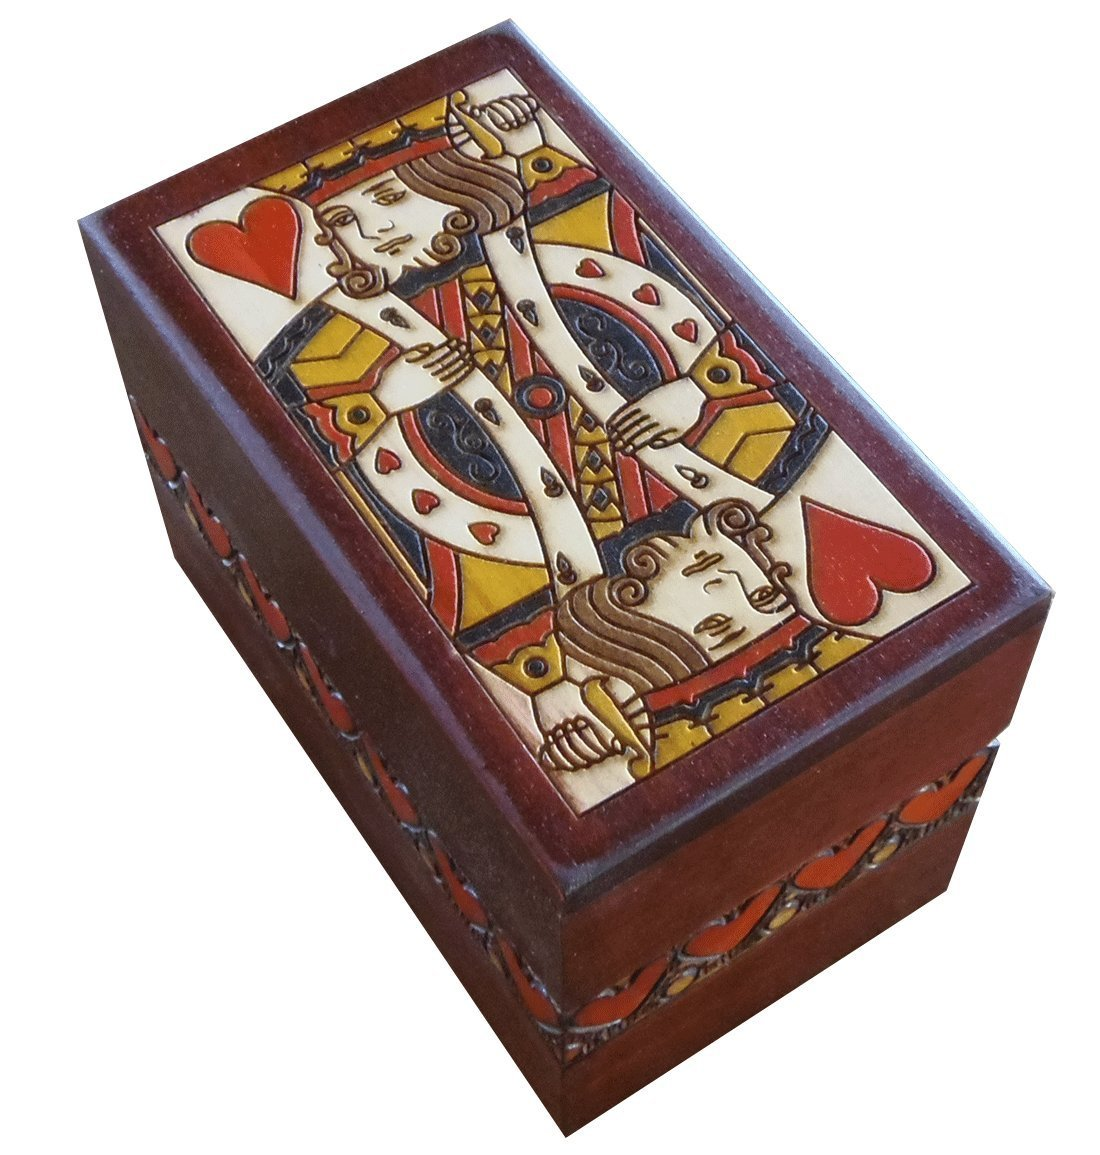 King-of-Hearts-Playing-Card-Holder-Box